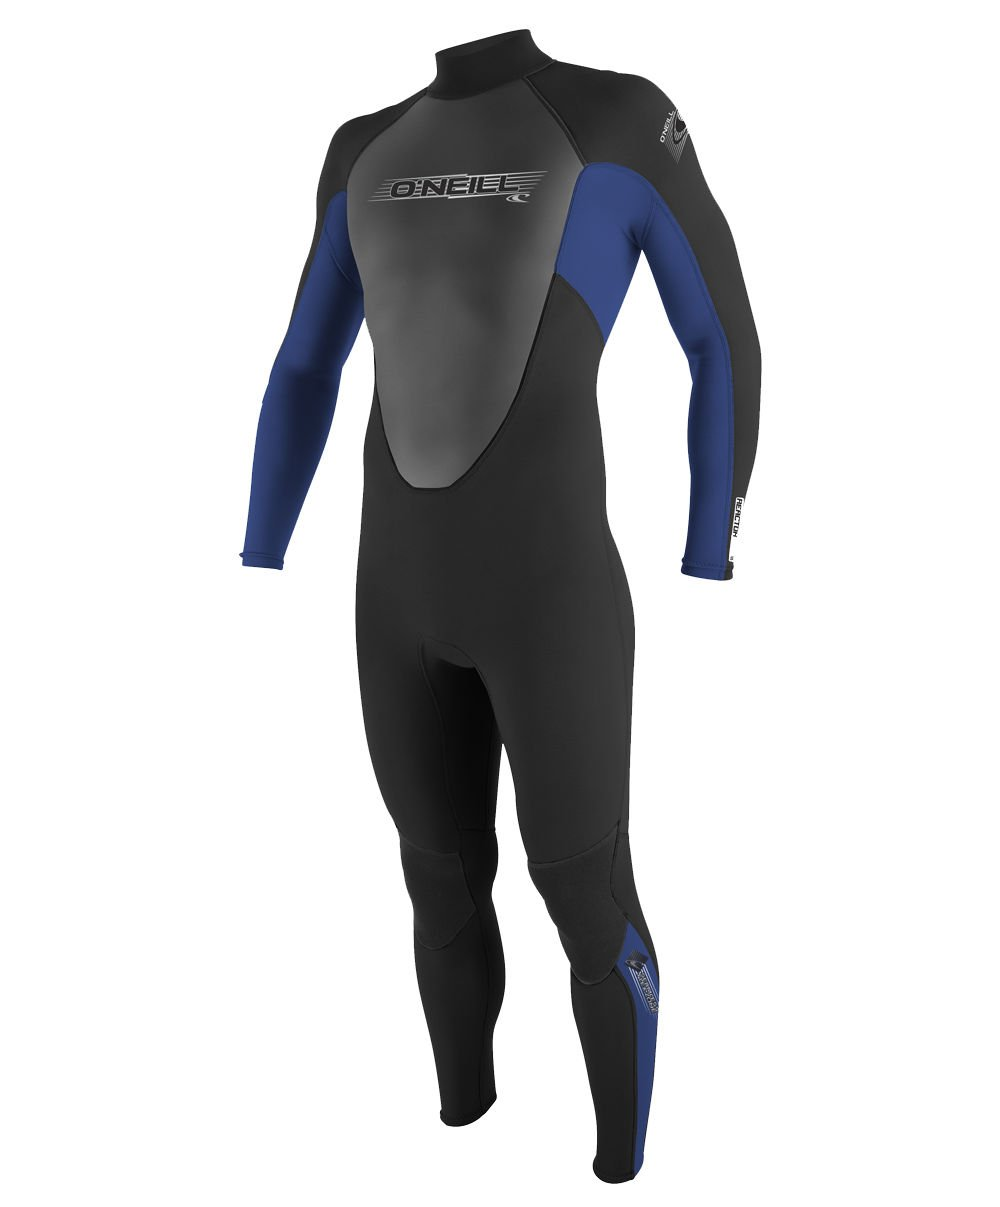 O'Neill Youth Reactor 3/2mm Back Zip Full Wetsuit, Black/Pacific/Black, 8 by O'Neill Wetsuits